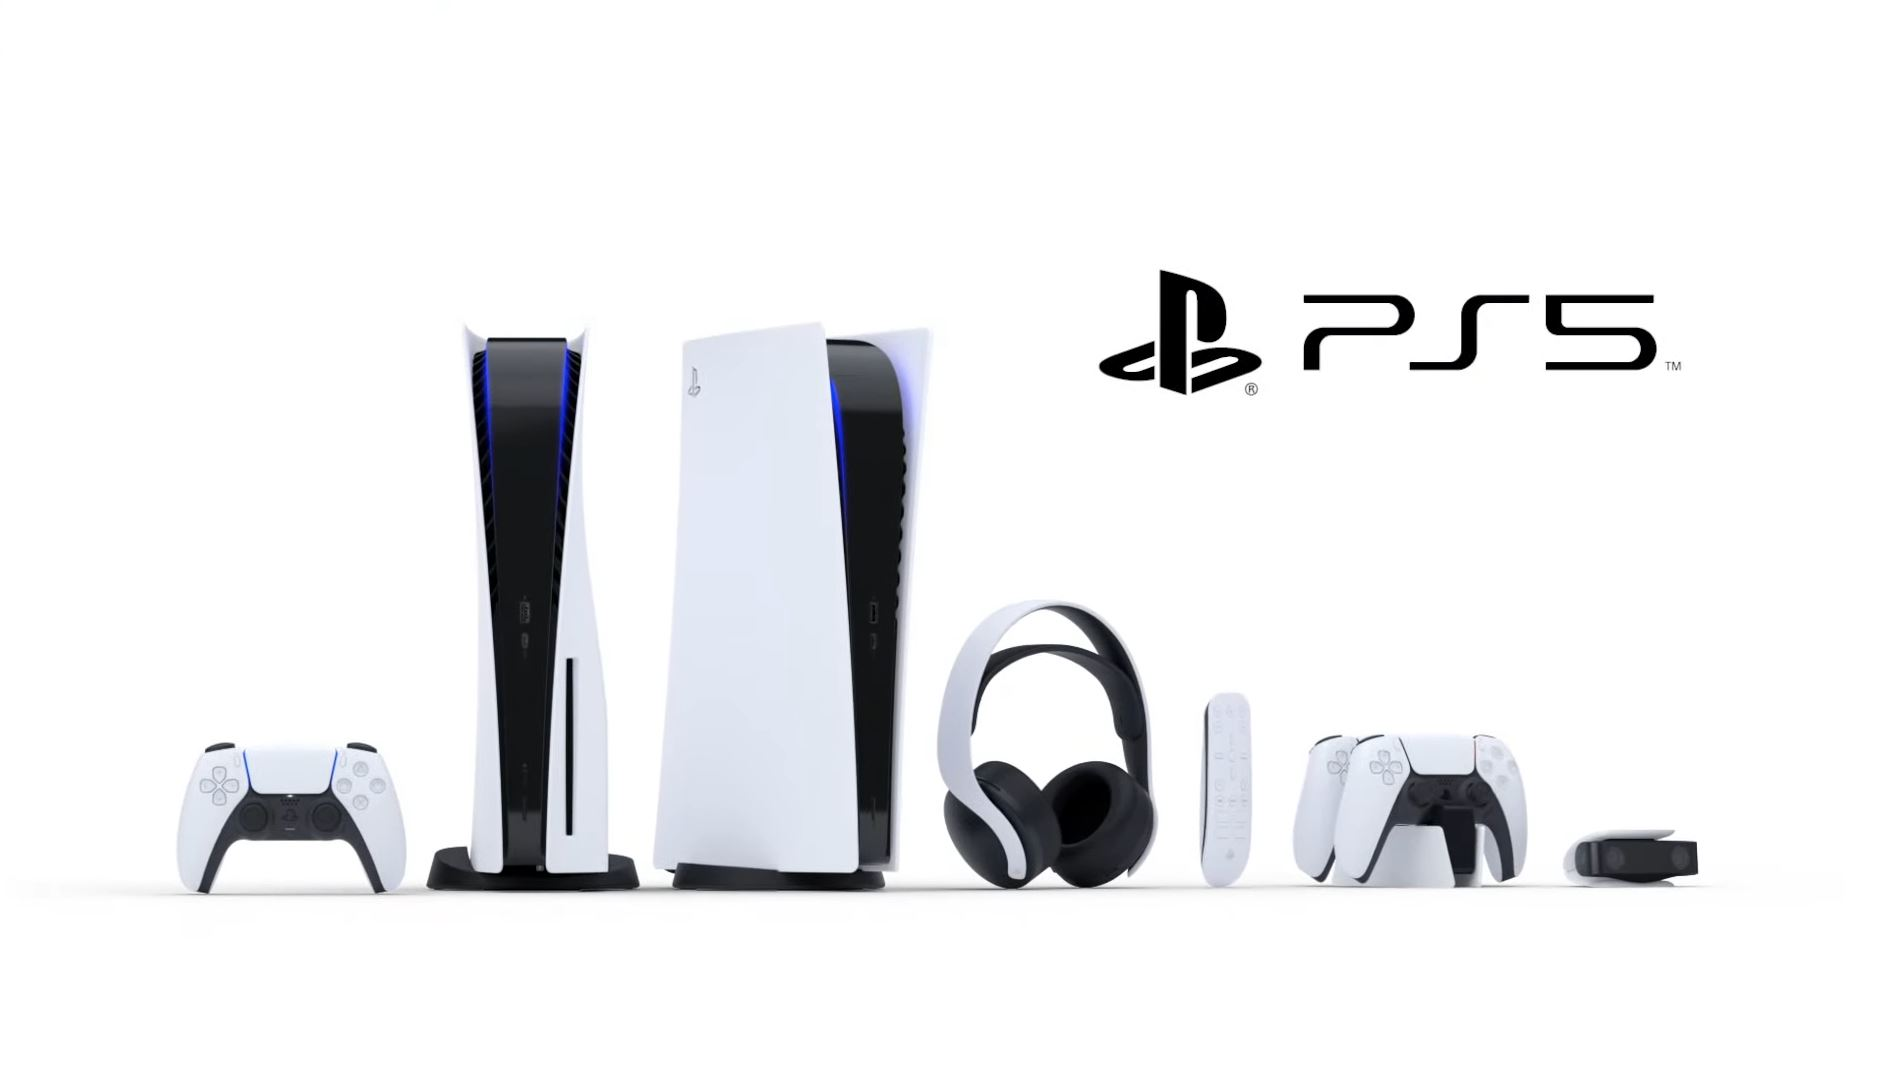 These are the official PS5 accessories - SlashGear